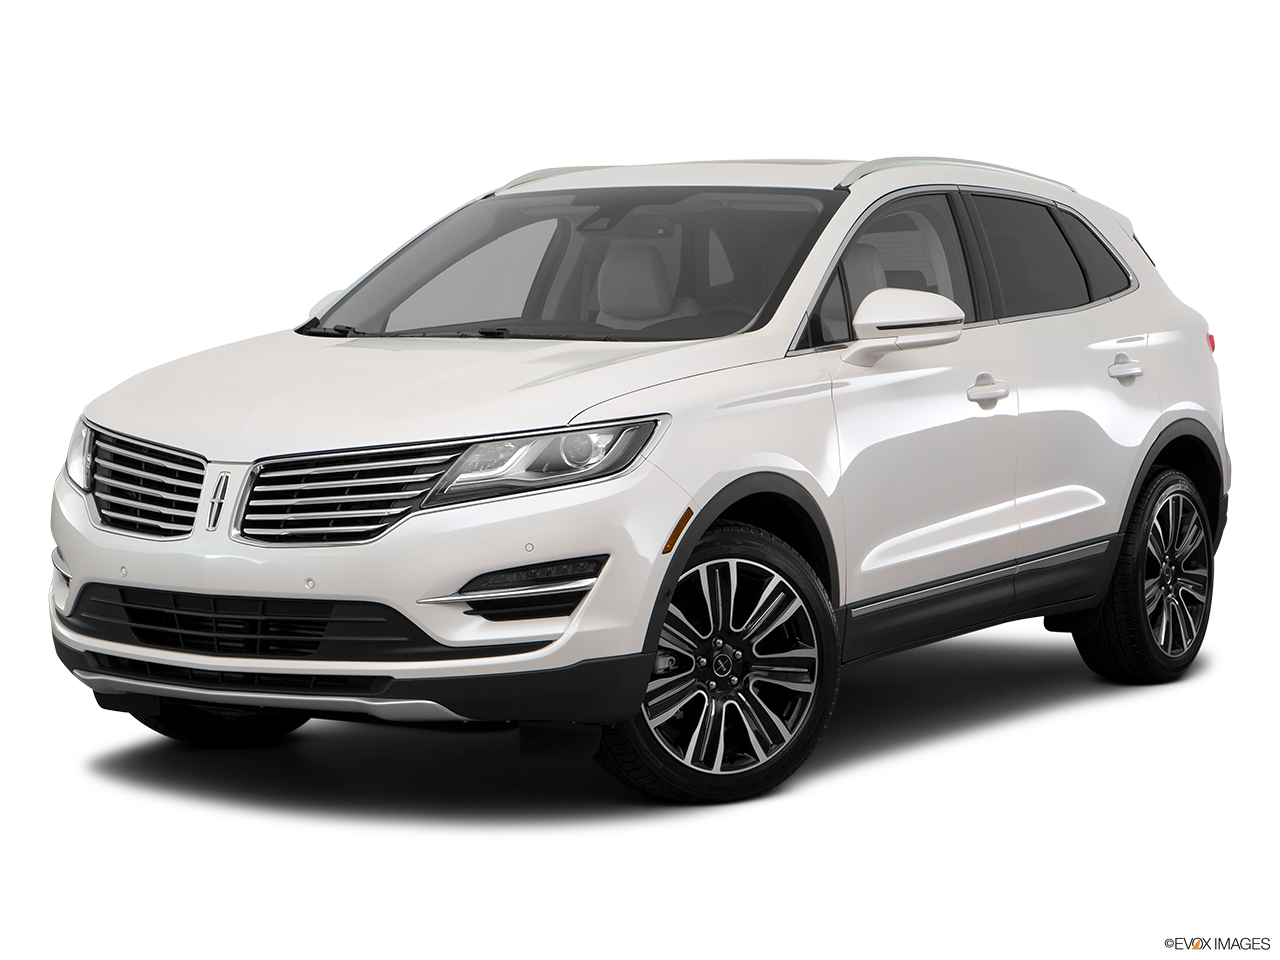 2017 lincoln mkc dealer serving los angeles galpin lincoln. Black Bedroom Furniture Sets. Home Design Ideas